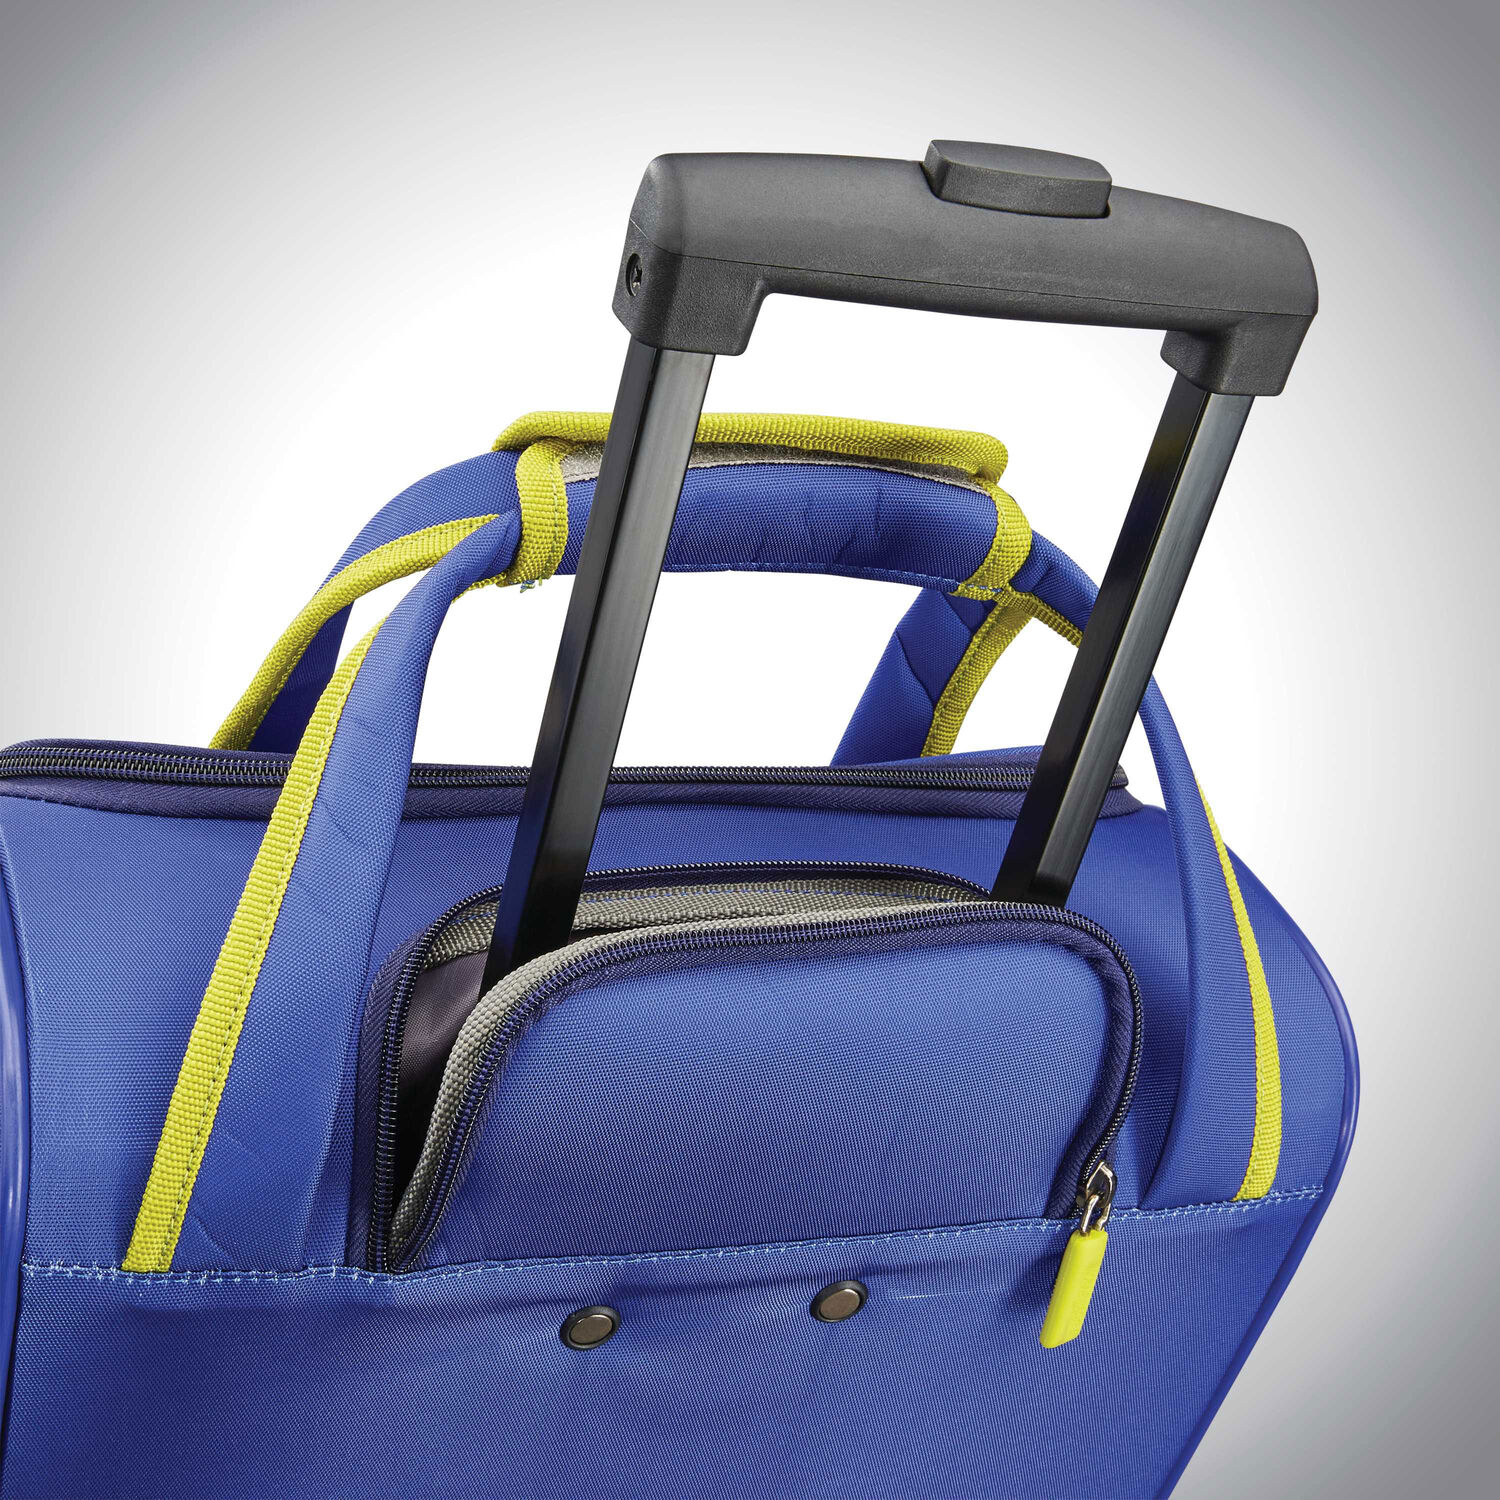 88003e7c6 American Tourister Sonic Rolling Tote in the color Blue/Lime.